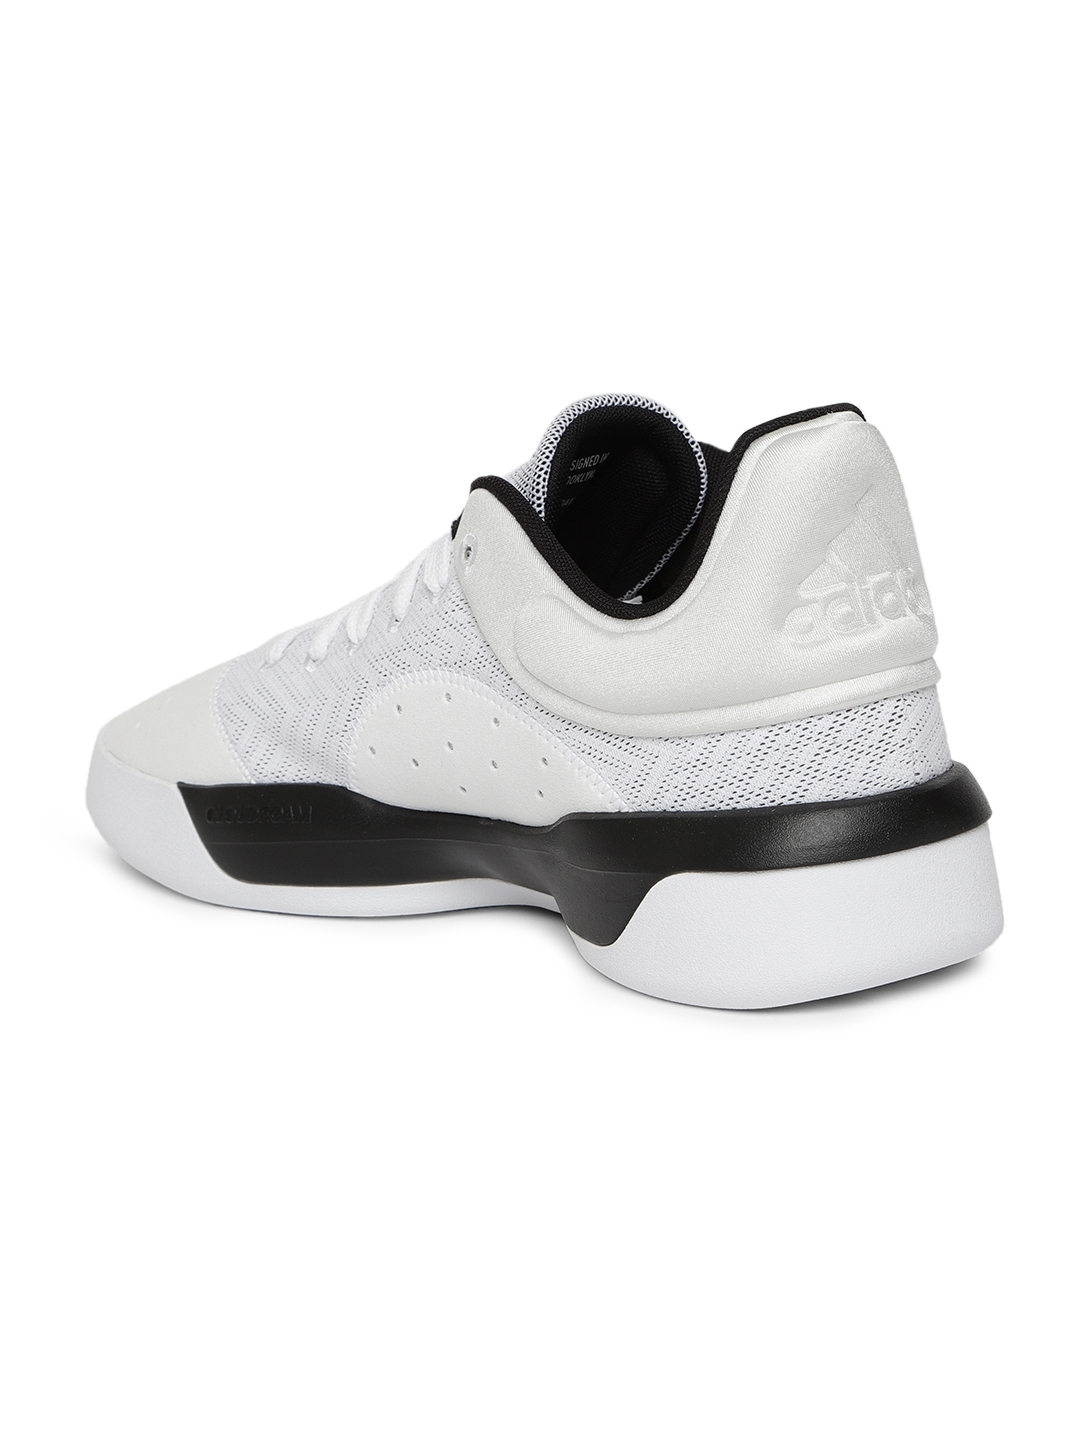 new product 67bbf 63be8 ADIDAS Men White Pro Adversary Low 2019 Basketball Shoes